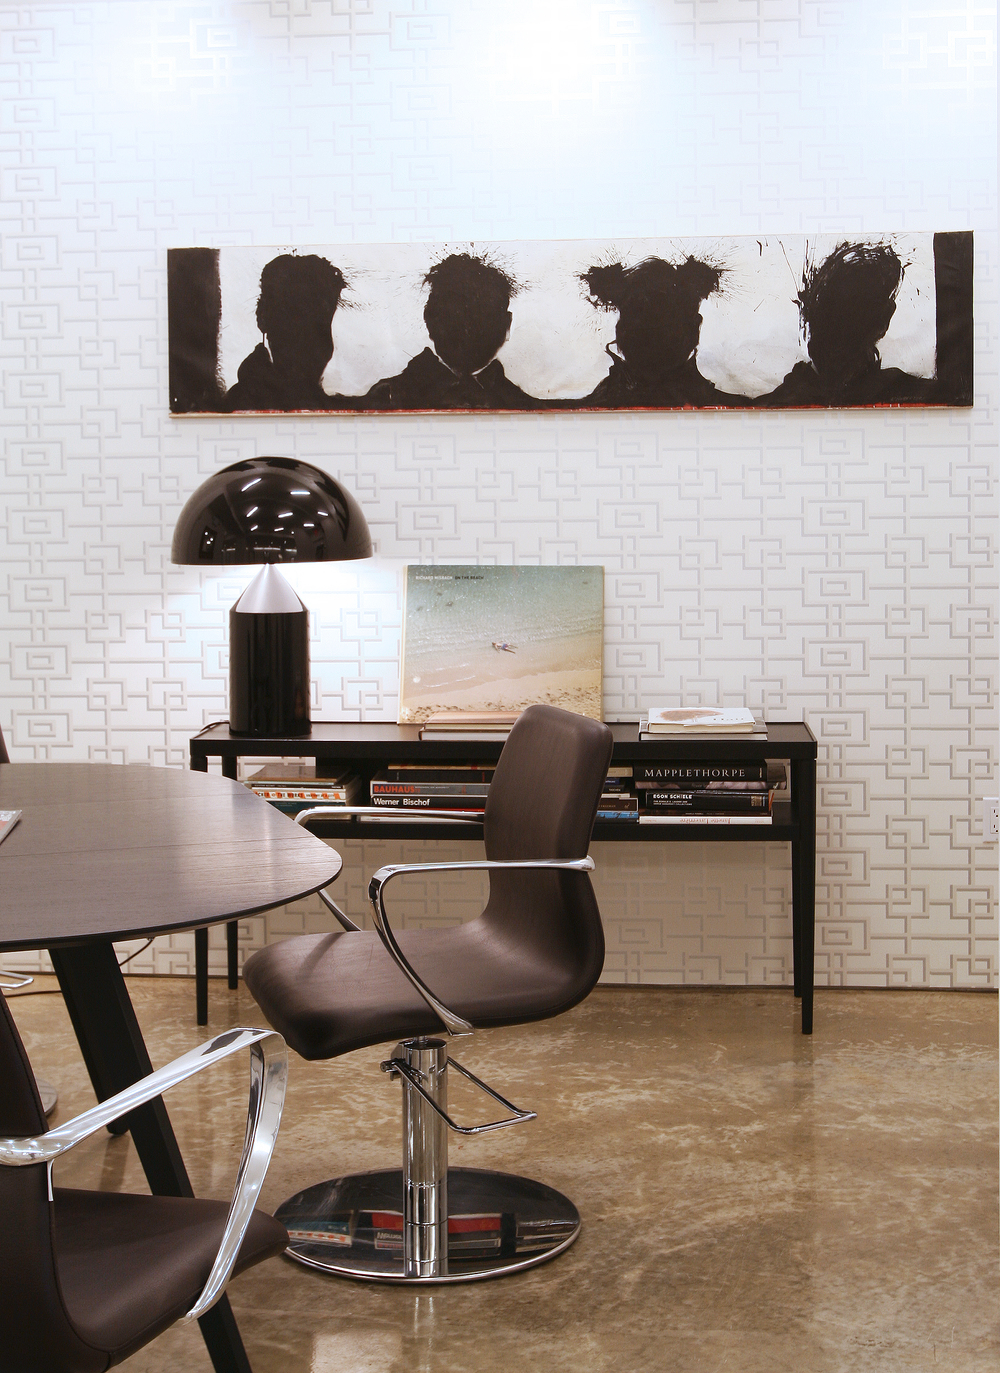 Takamichi Hair islocated at 263 Bowery in New York City andis filled with art.